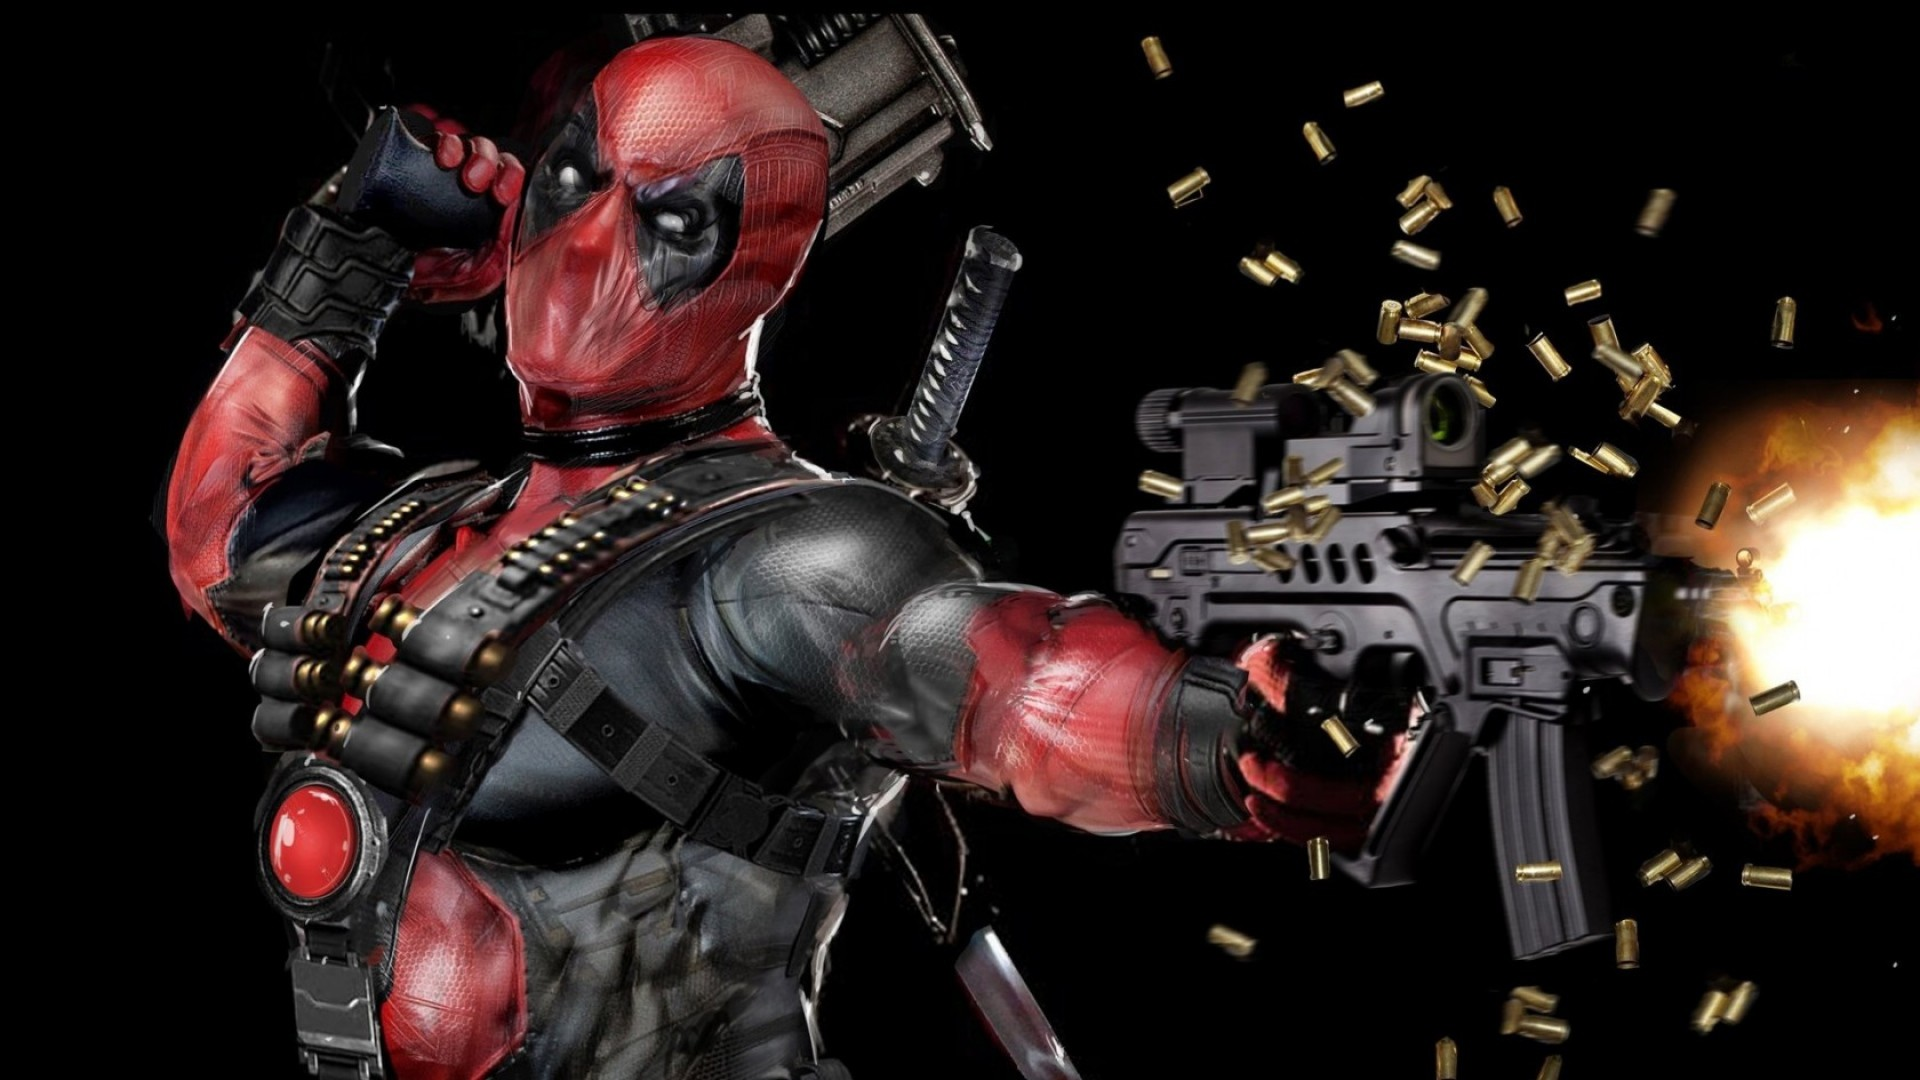 1920x1080 Download Wallpaper  Deadpool, Mask, Gun, Automatic Full .